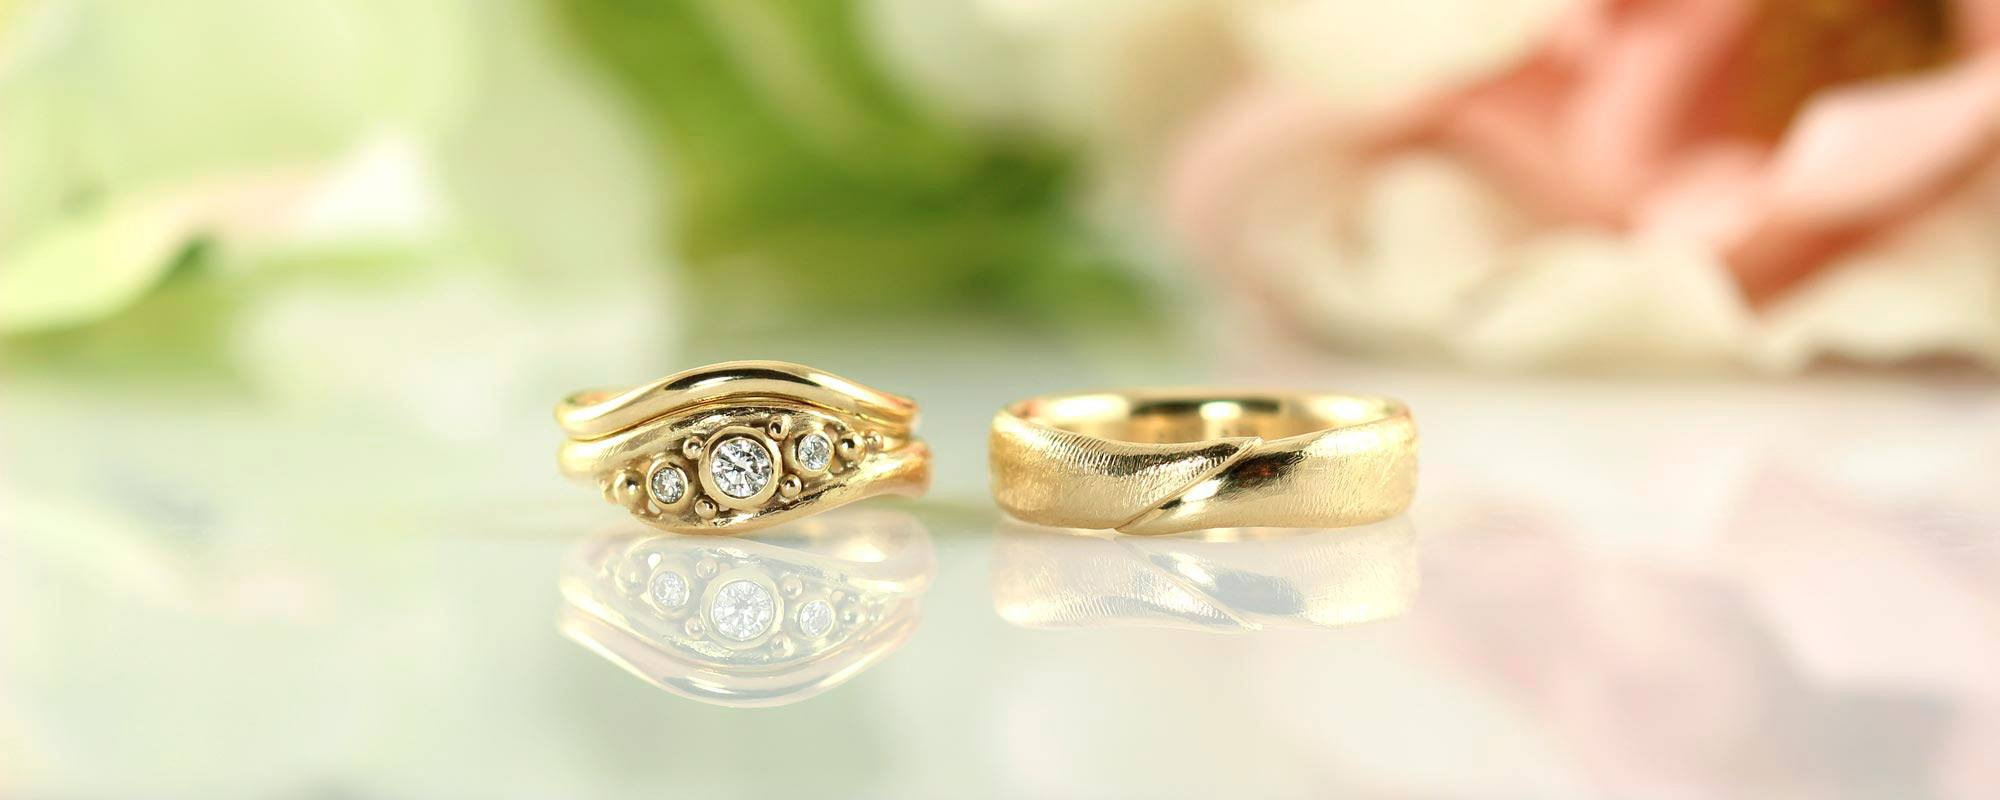 collections handmade wedding rings embrace of gold with diamonds - Handmade Wedding Rings